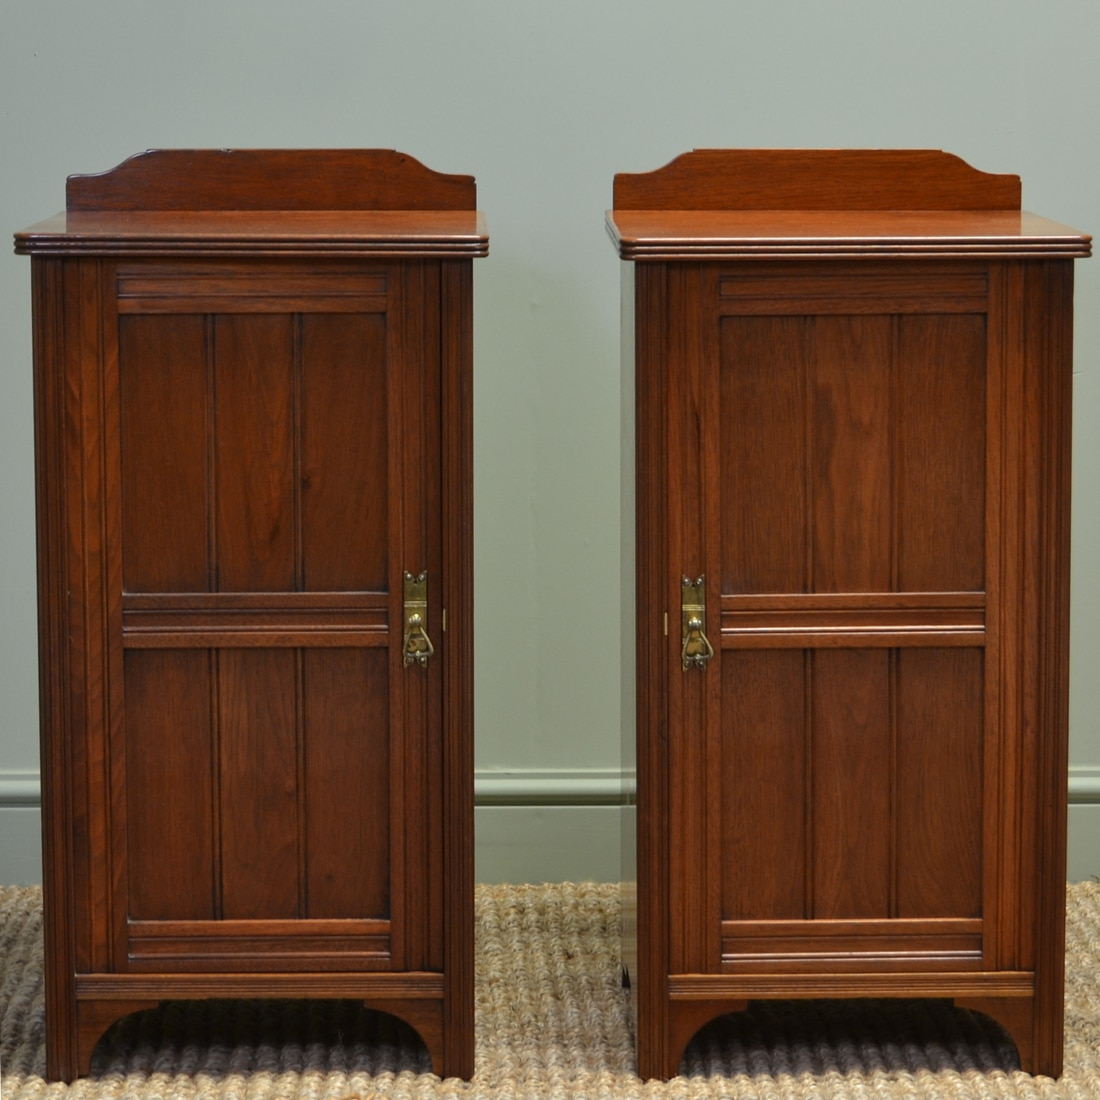 Impressive Victorian Walnut Antique Bedside Cabinets by Morison & Co  Edinburgh - Impressive Victorian Walnut Antique Bedside Cabinets By Morison & Co